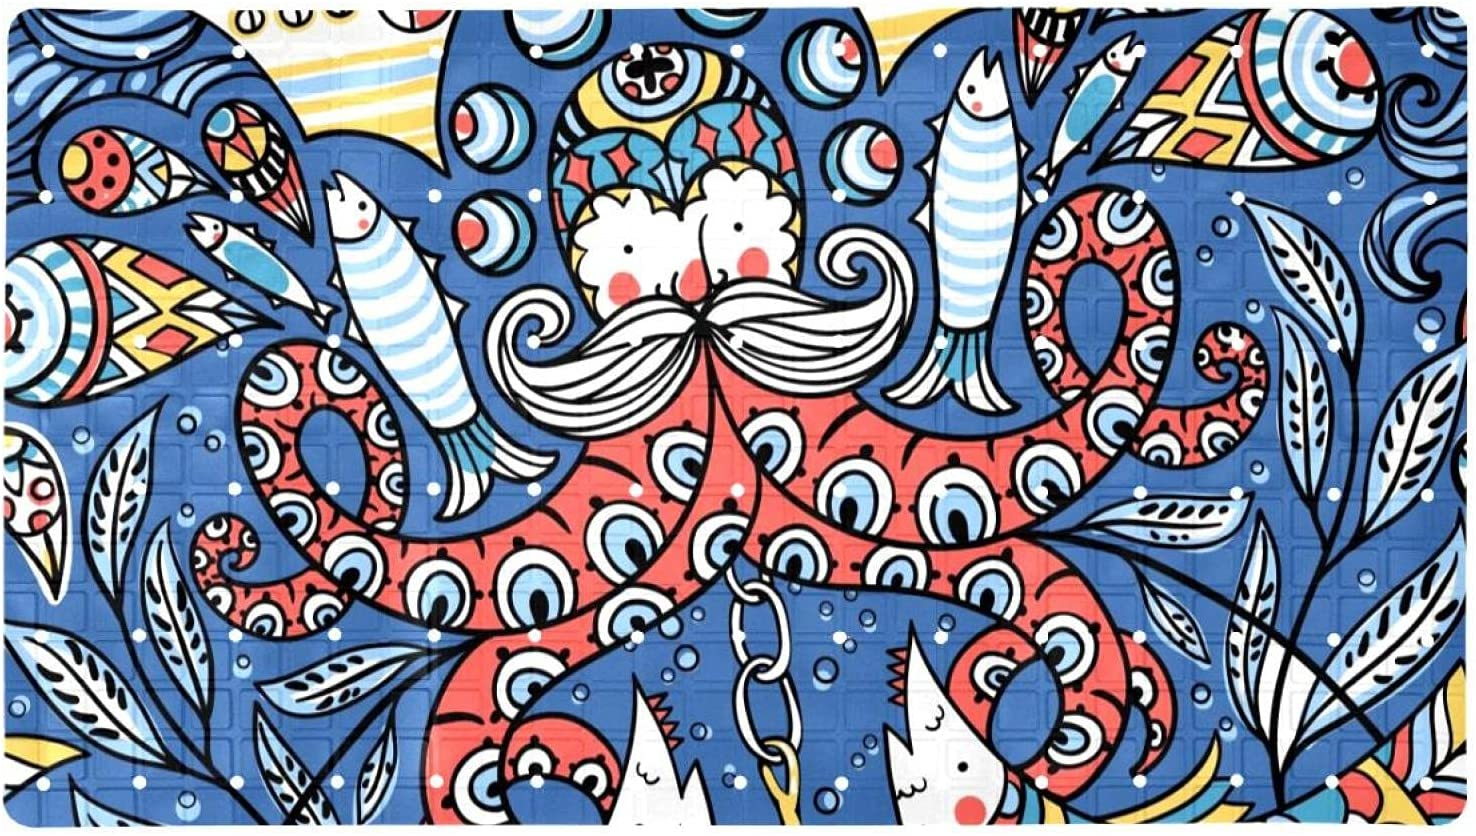 Bath Tub Shower Mat 15.7x27.9 Old Overseas parallel import regular item 5 ☆ popular Colored Octopuses inches Fishe